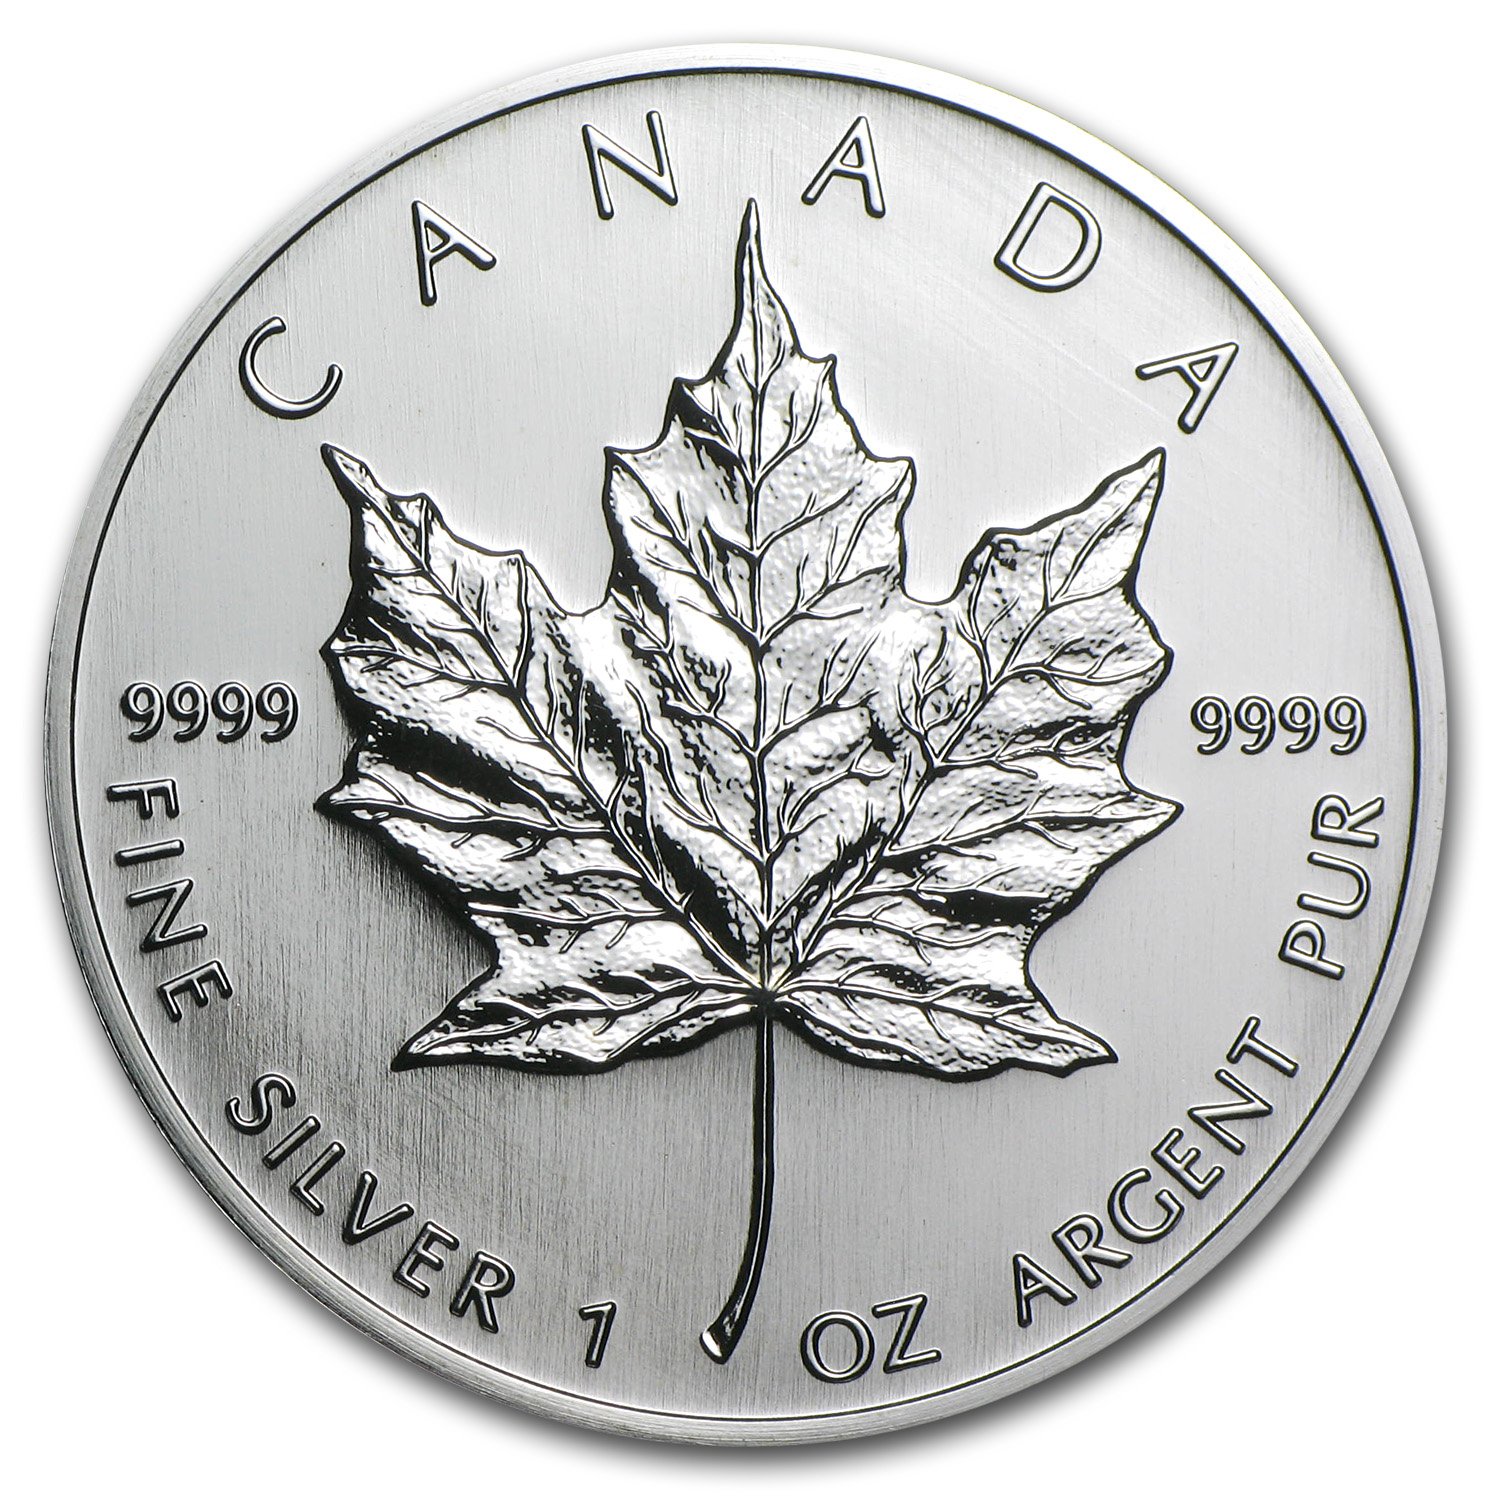 2005 Canada 1 oz Silver Maple Leaf BU